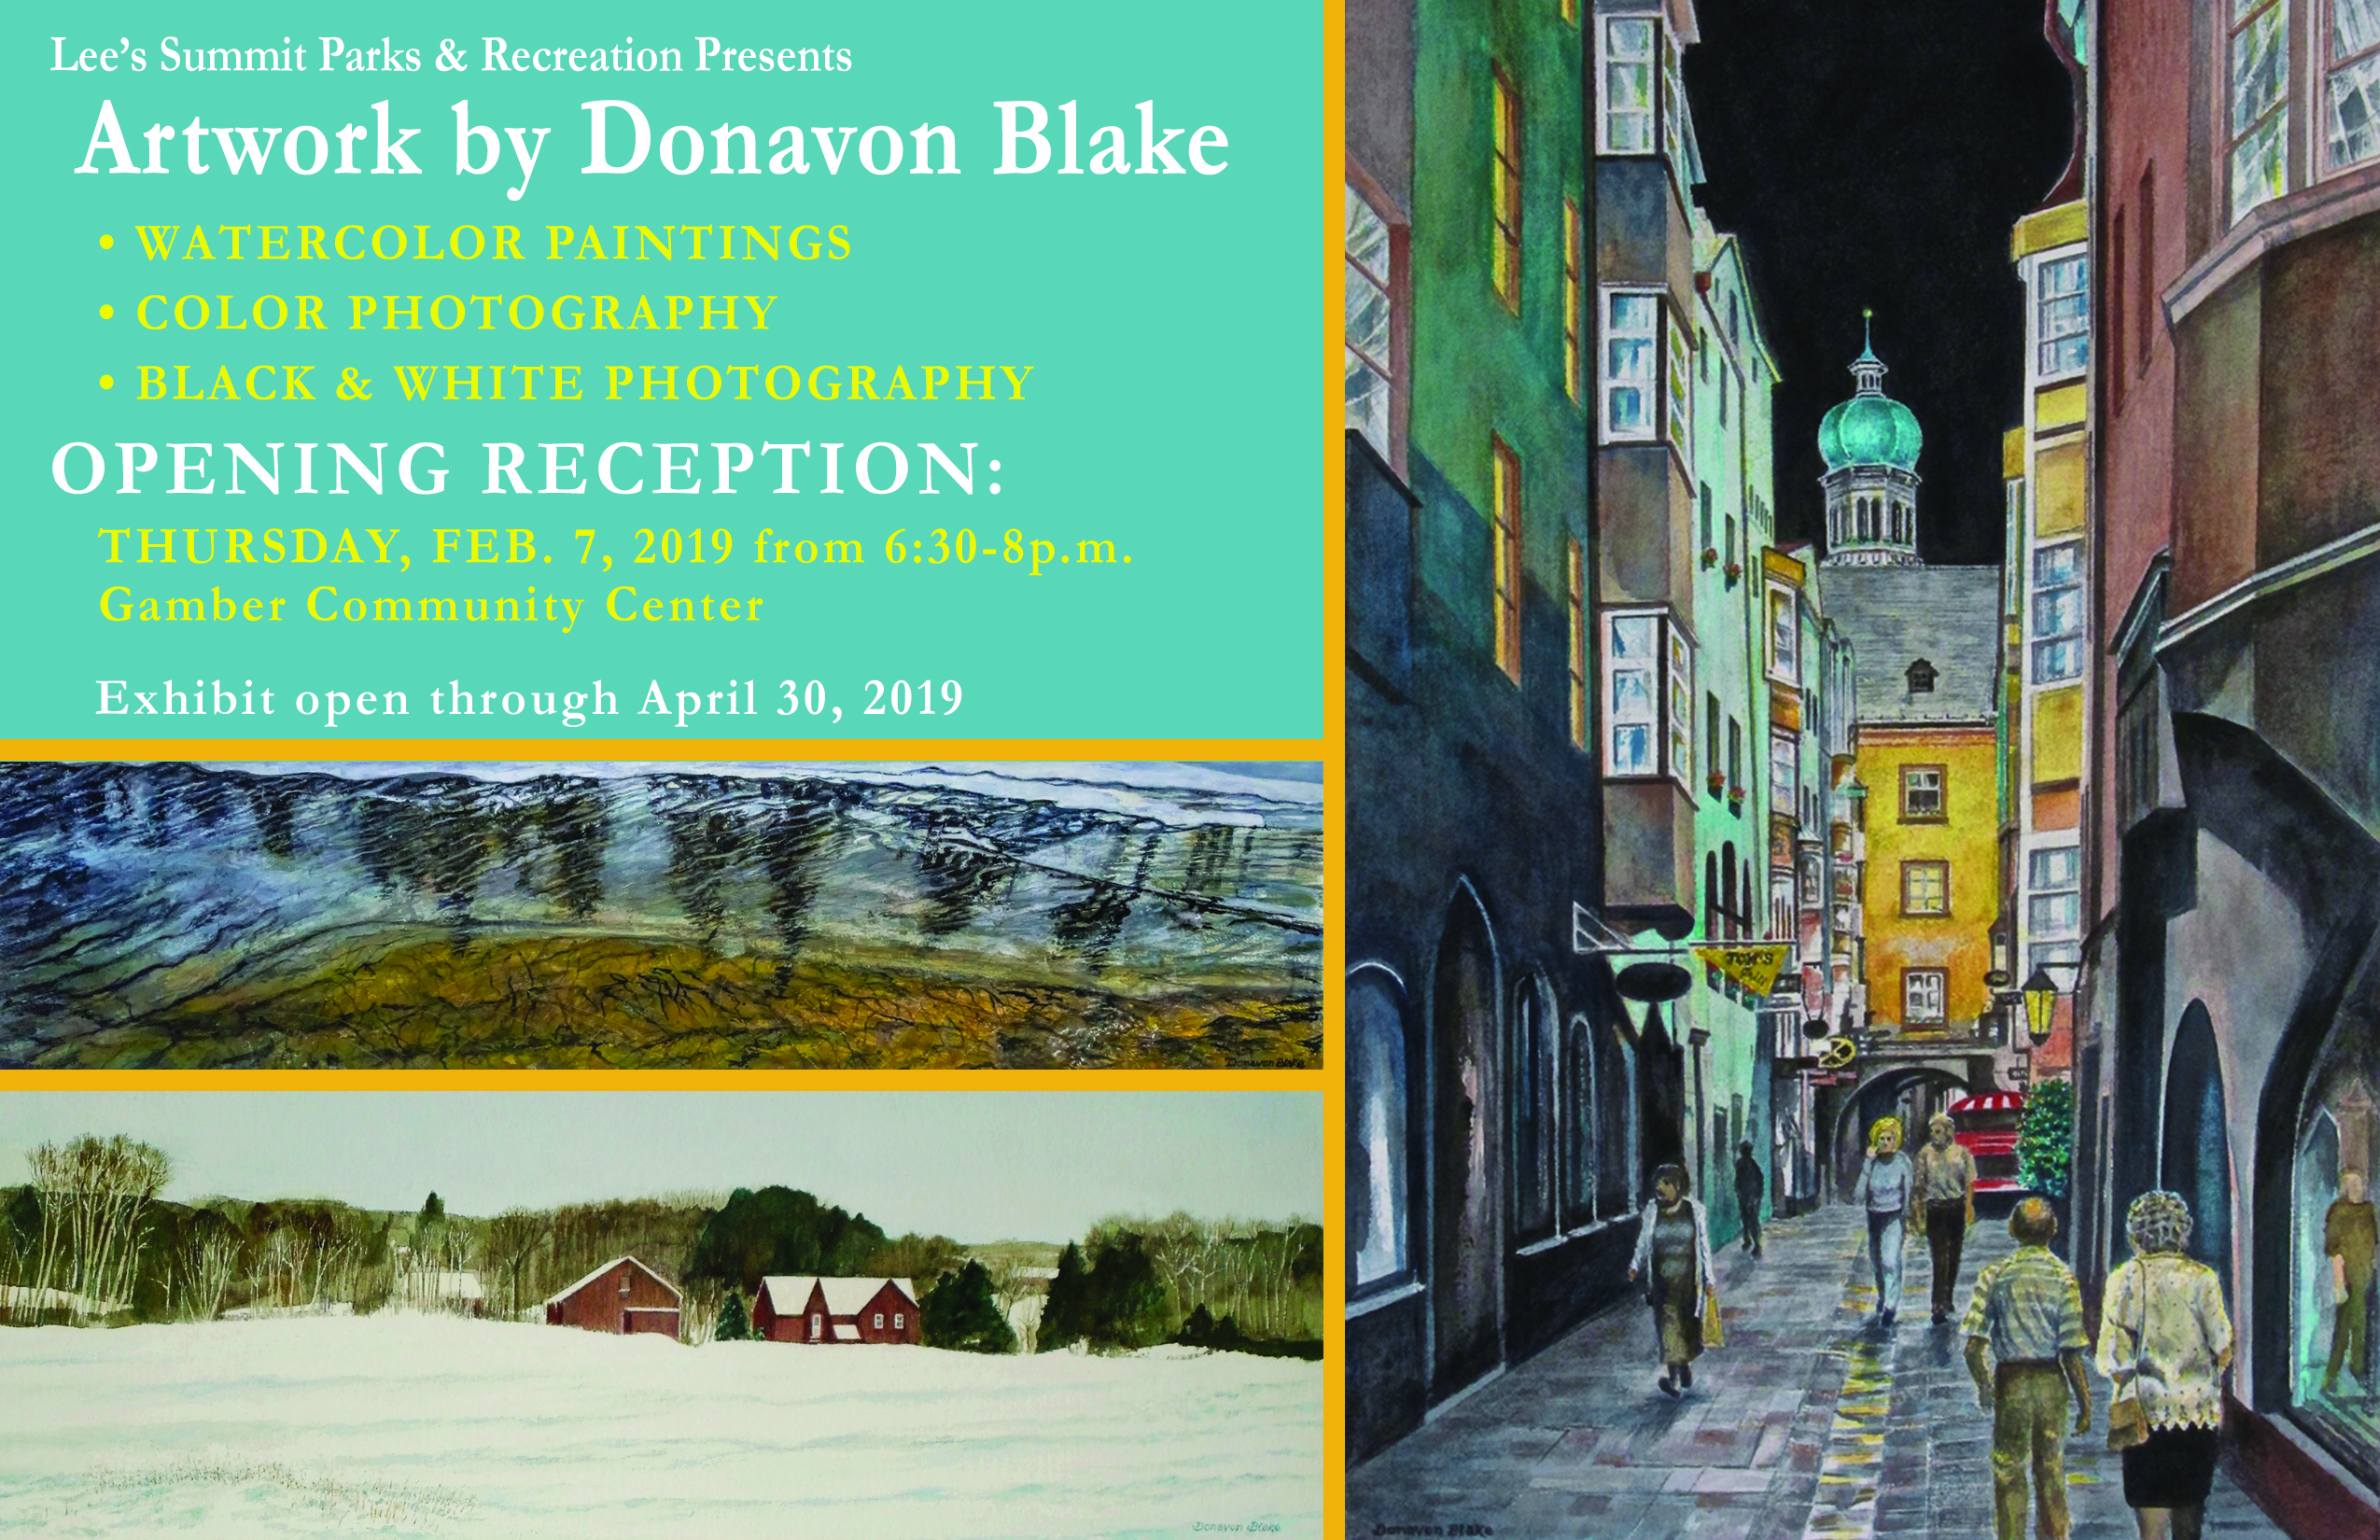 Artwork by Donavon Blake, Thursday, Feb. 7 from 6:30 - 8PM